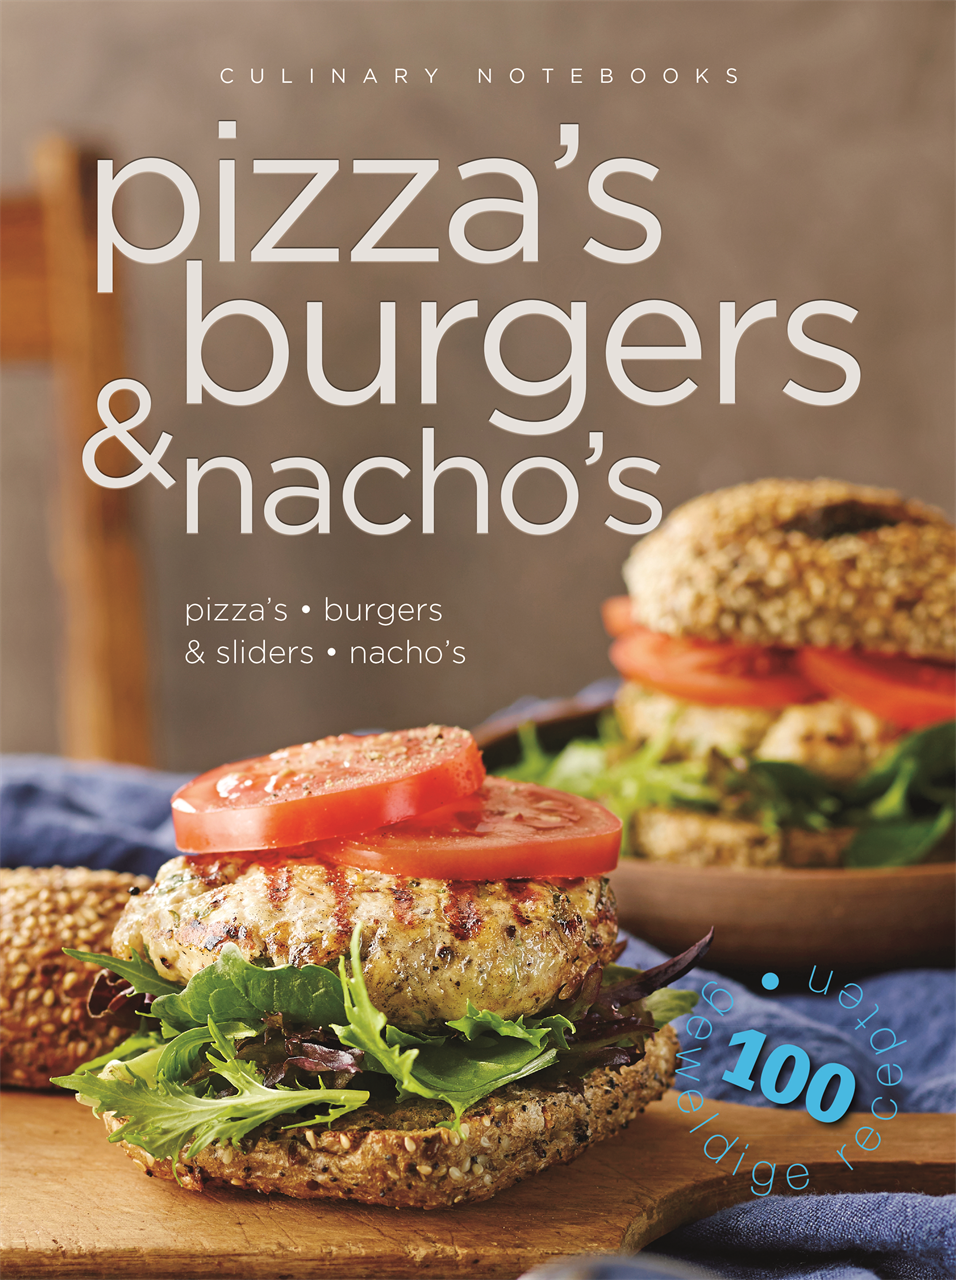 Culinary Notebooks Pizza Burgers en Nacho s